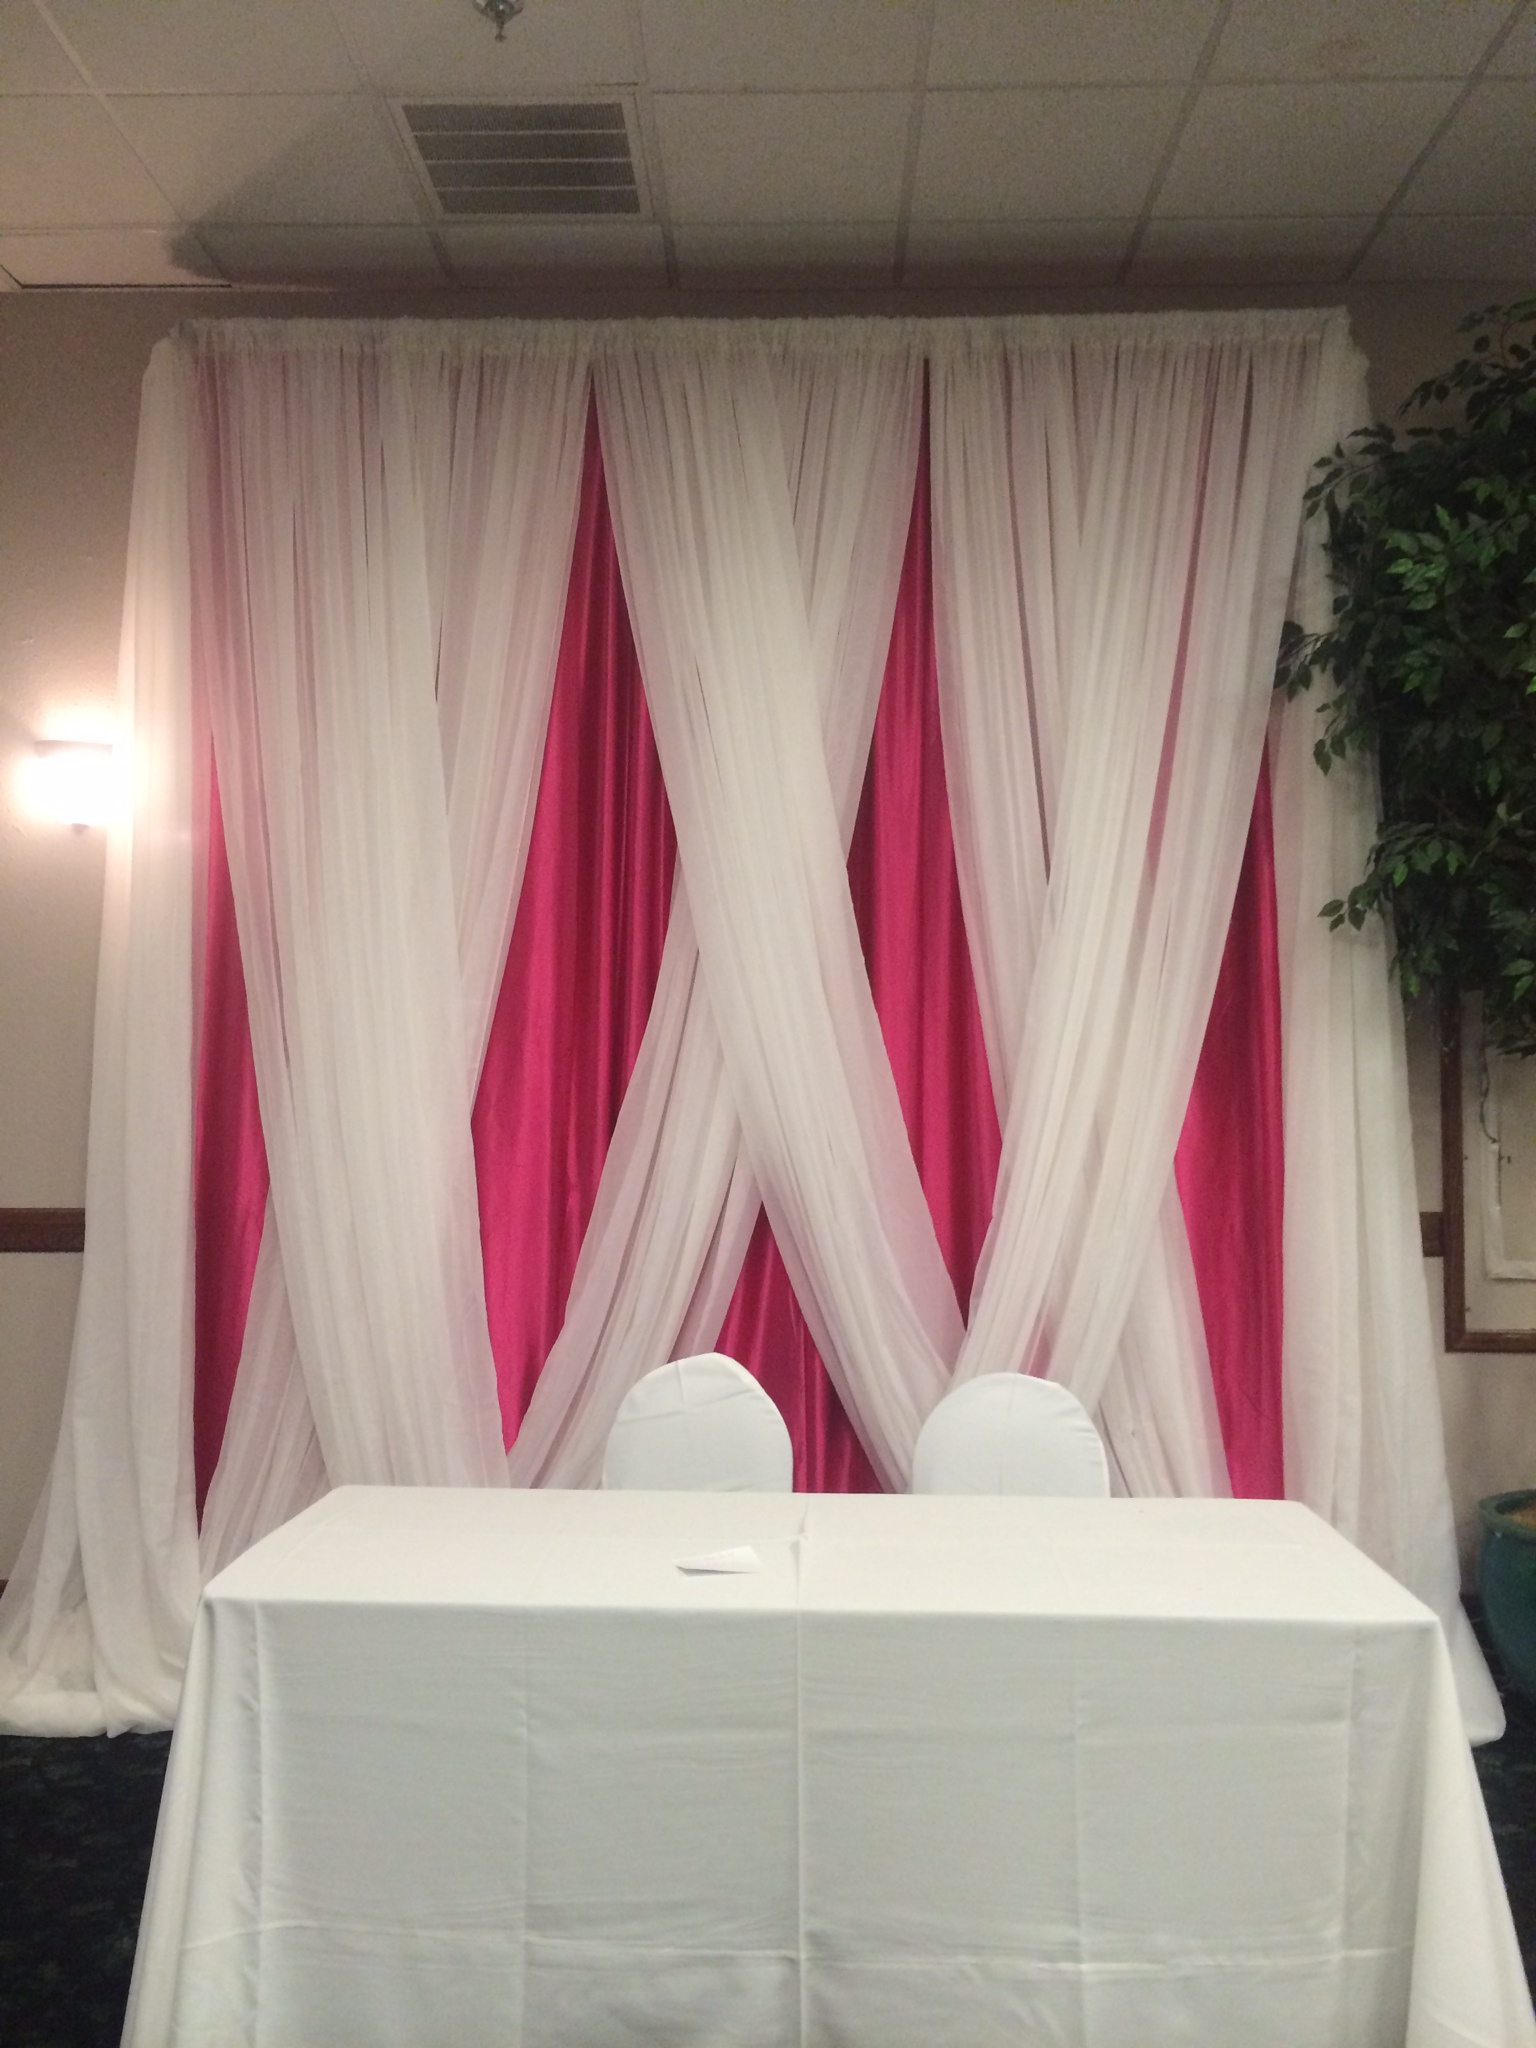 Rich Fabric Provides A Splash Of Style And Color Perfect For Weddings Receptions